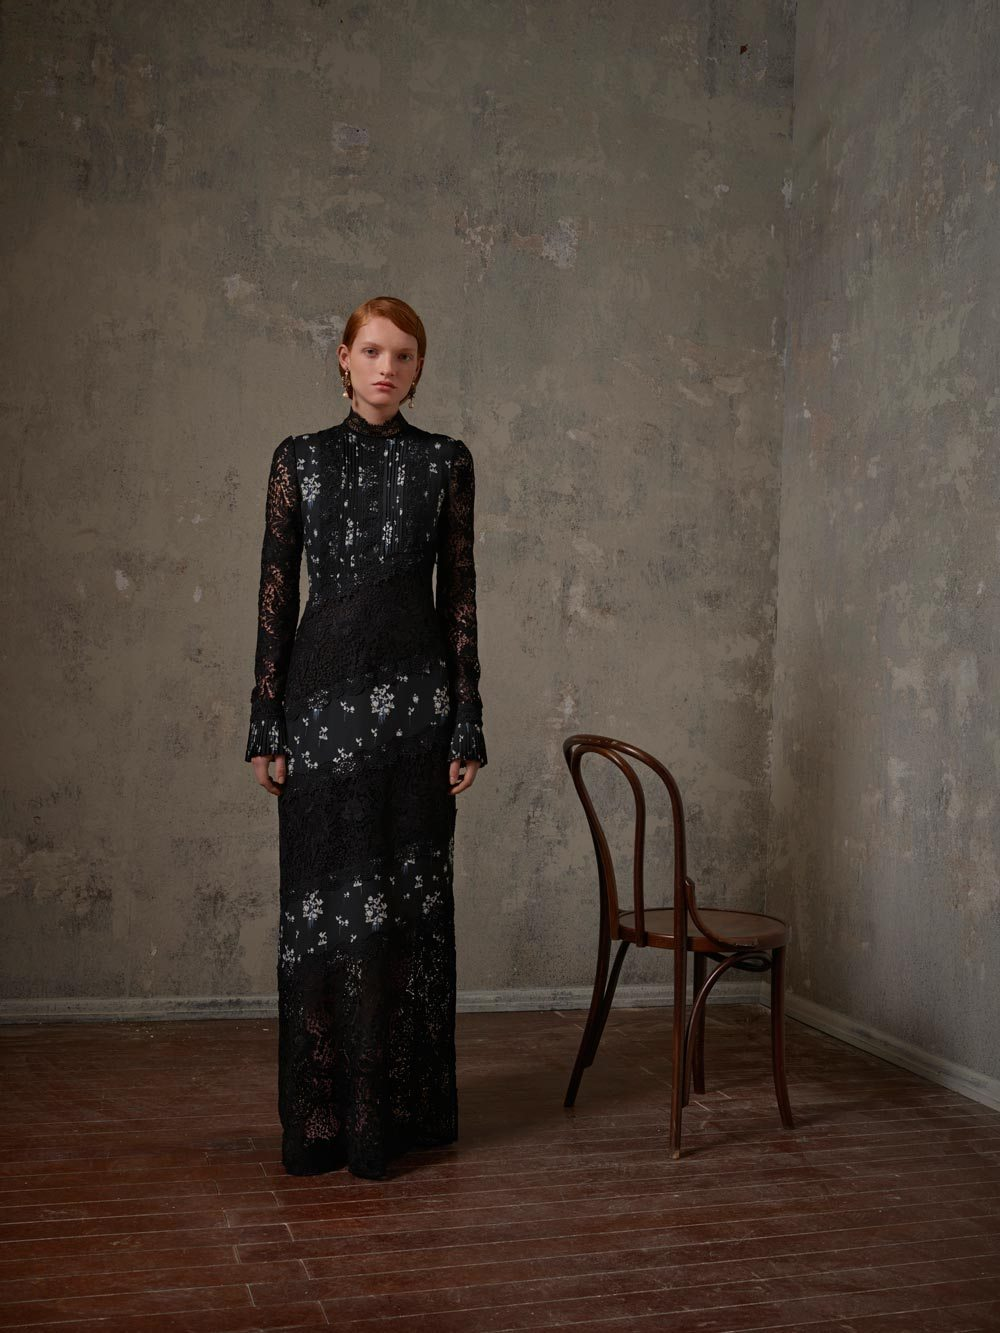 EnfntsTerribles-HM-Erdem-Favorite-Looks-3